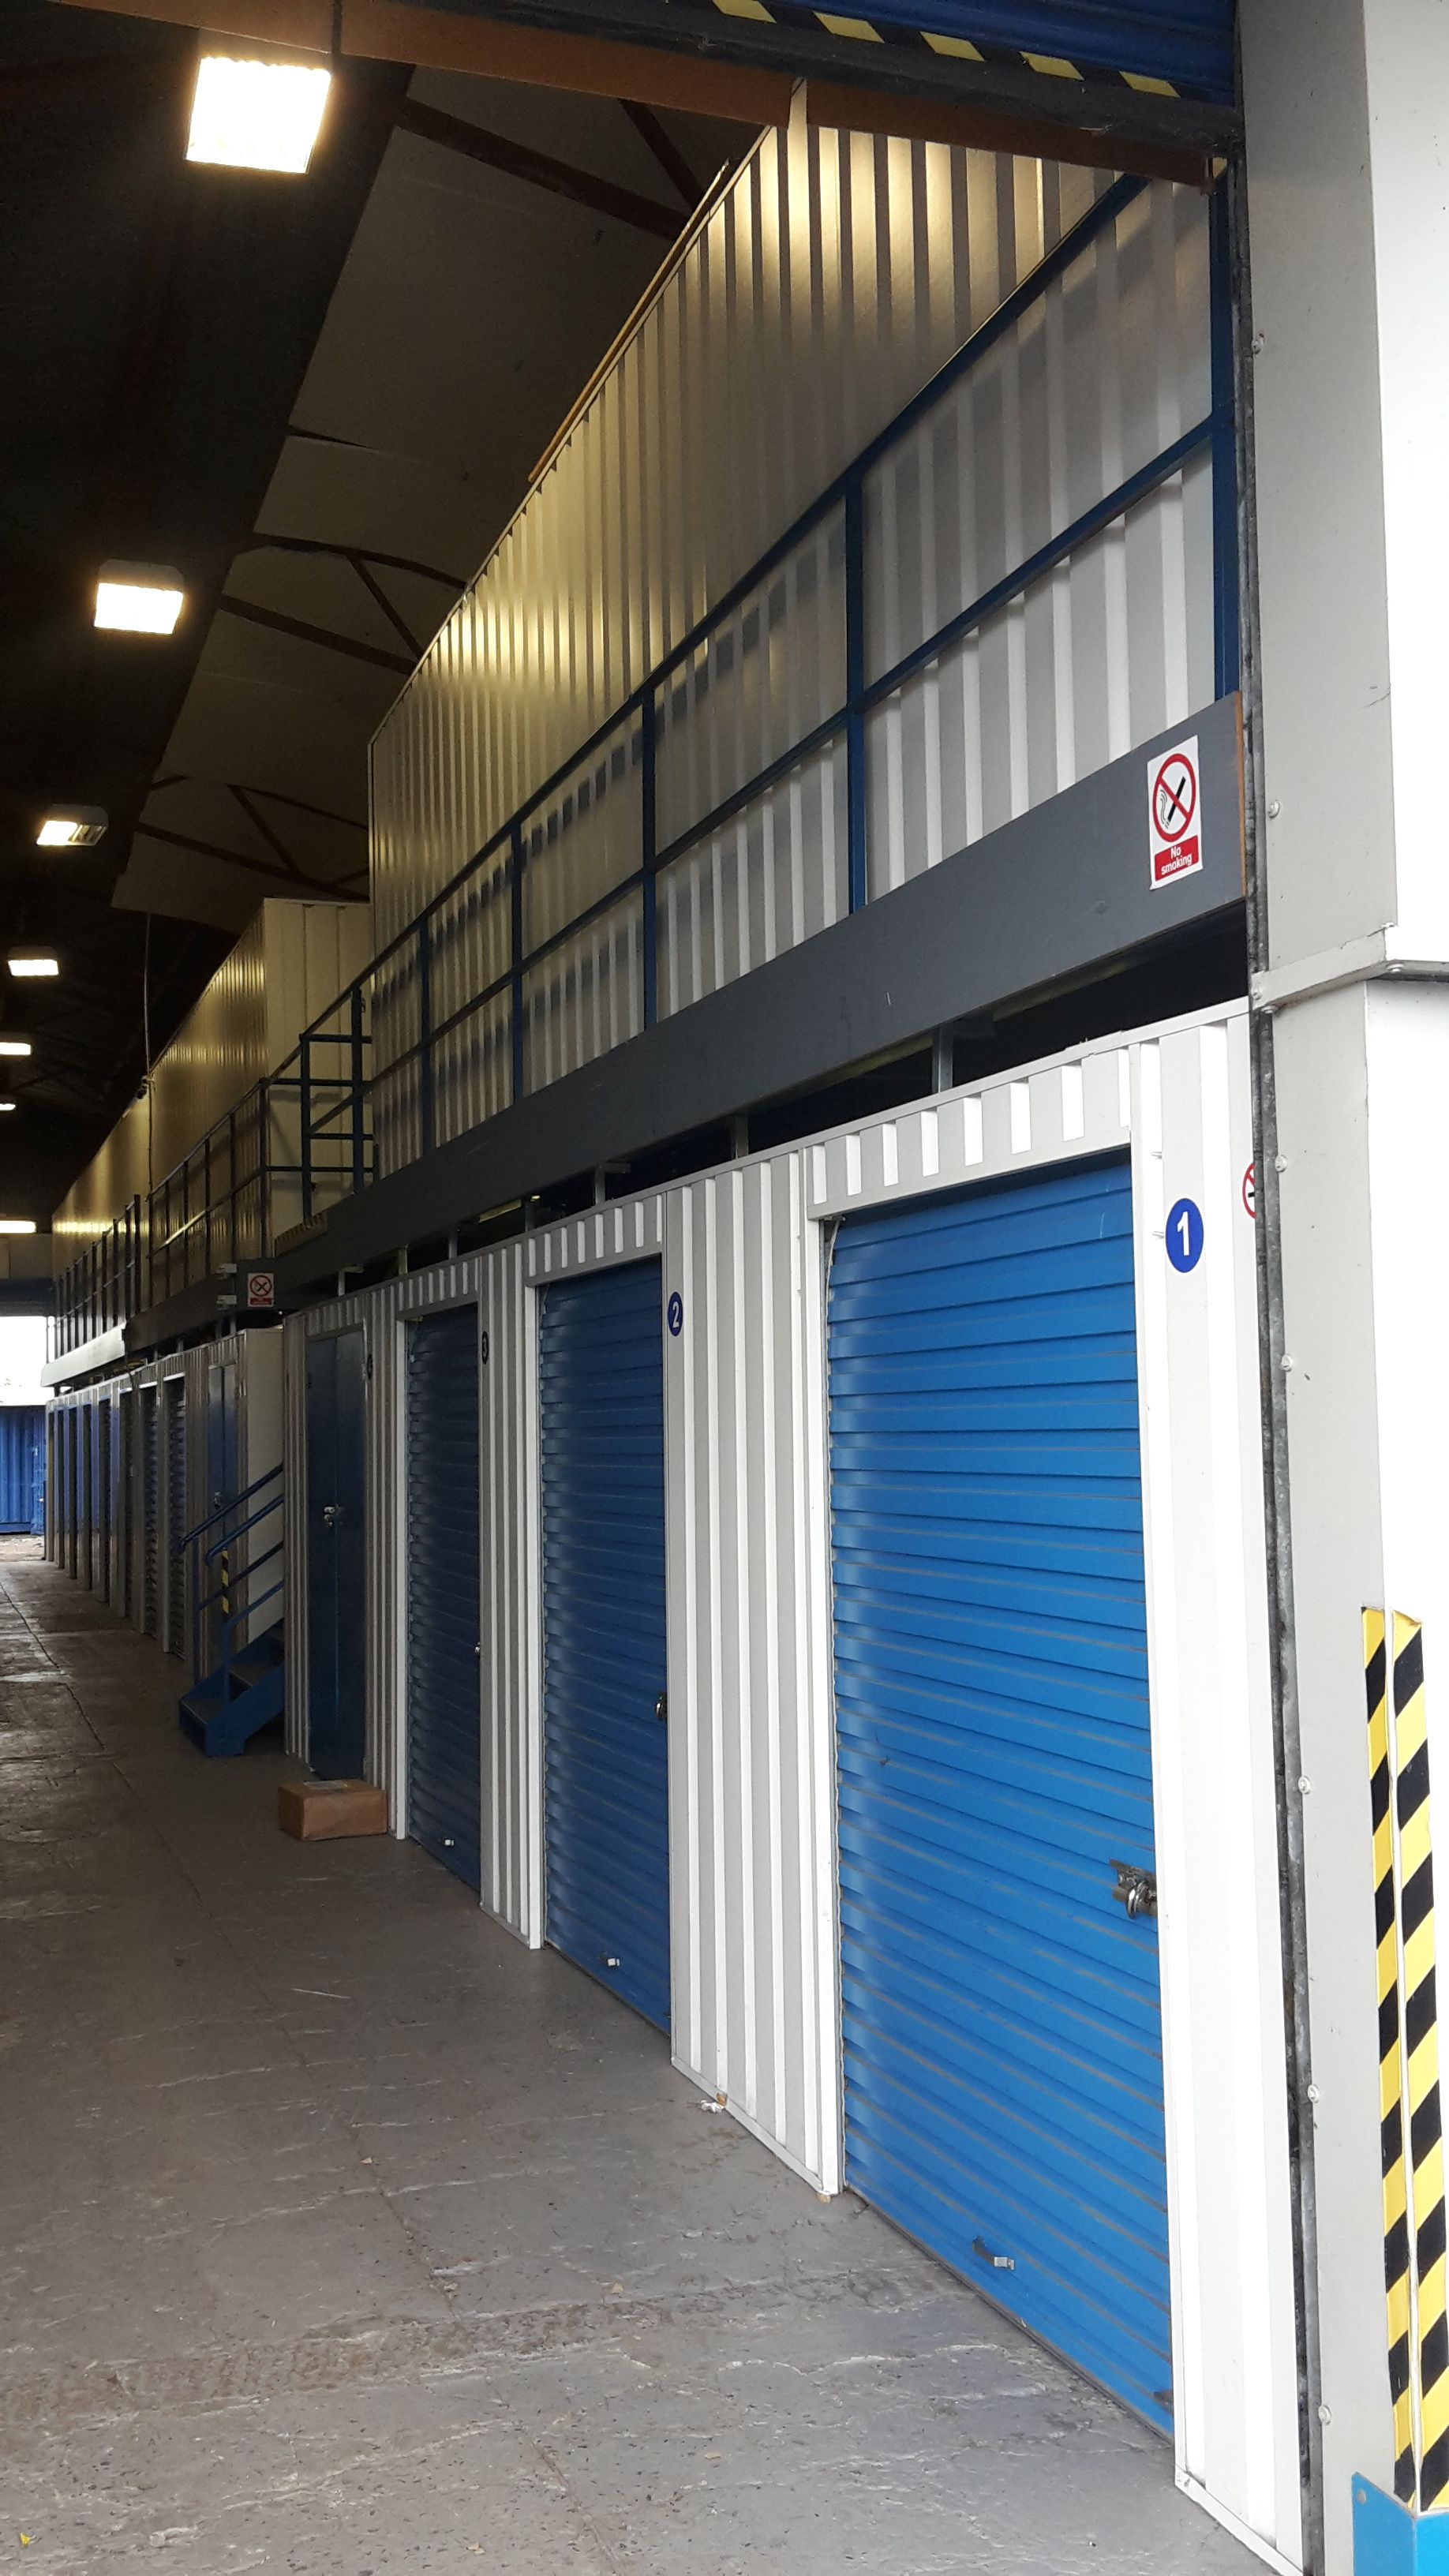 Document Storage Bangor | Document Storage Belfast & Business Storage | Document Storage | Self Storage Belfast | Bangor